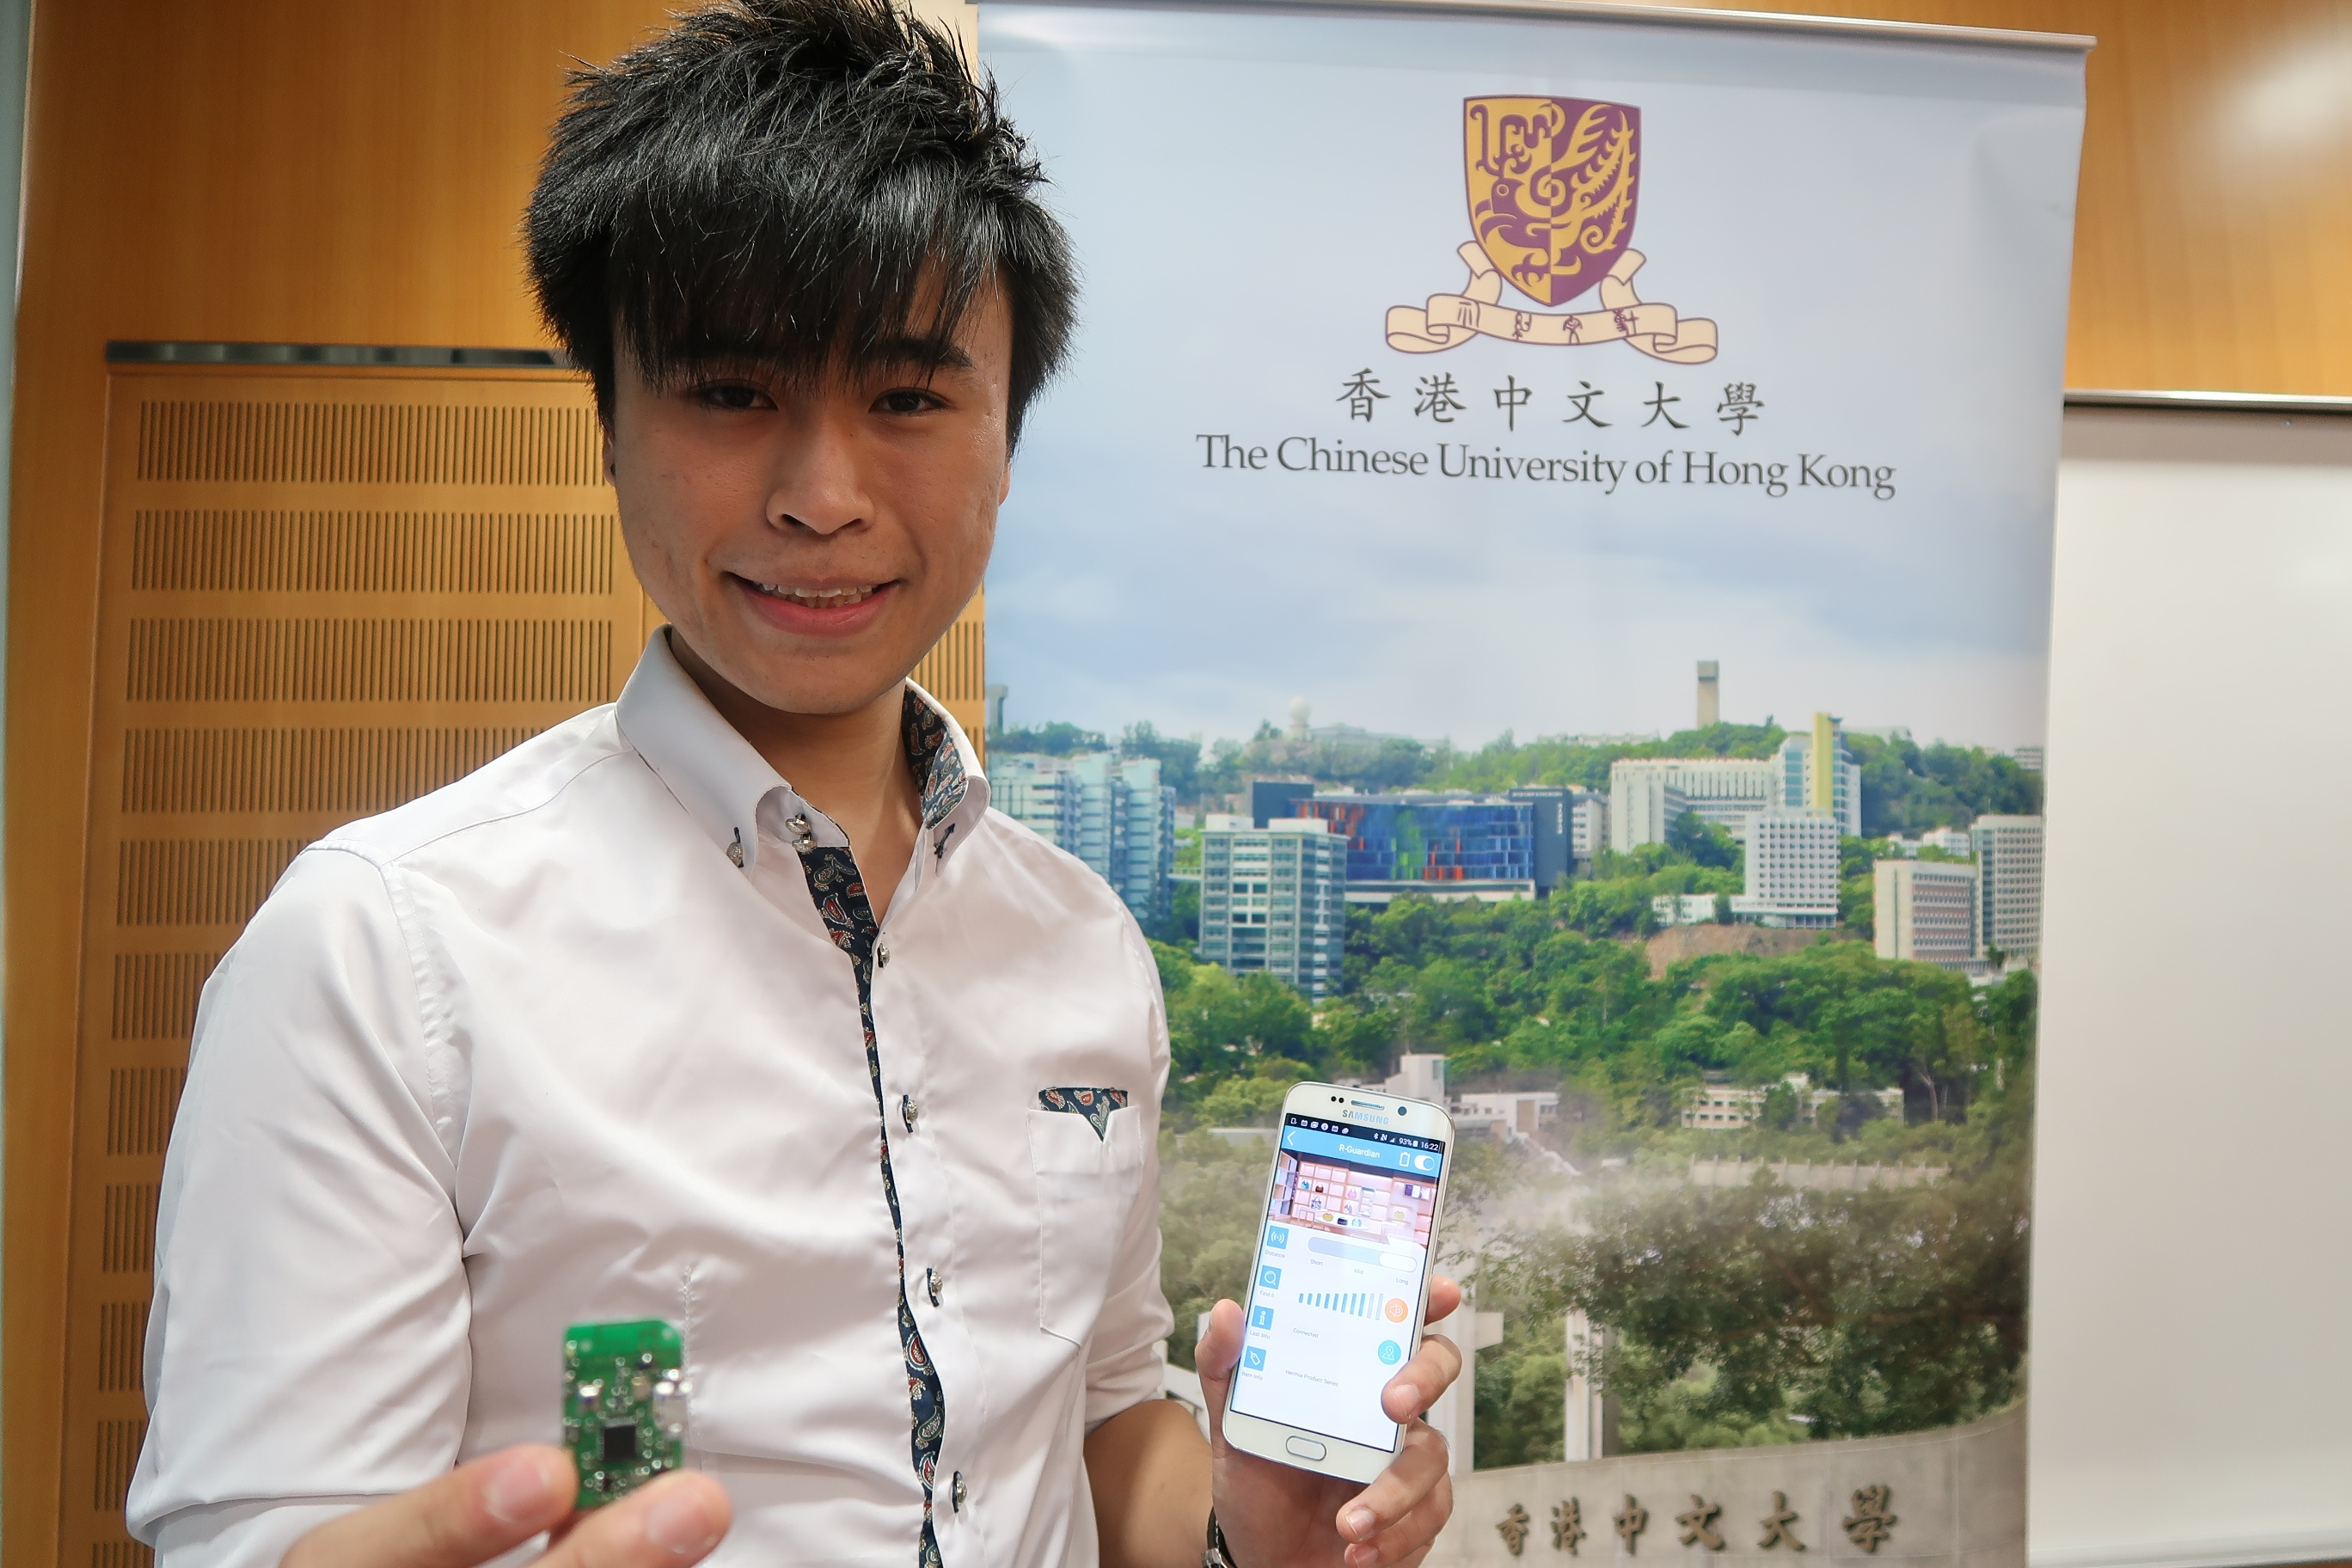 An Anti-loss Solution by two CUHK graduates, Mr. KUO Wai Keung from the Department of Information Engineering and Mr. LAU Pak Lam from the Department of Finance was awarded the Grand Prize in Entrepreneurship and the First-Class Award of Newly Established Enterprise.